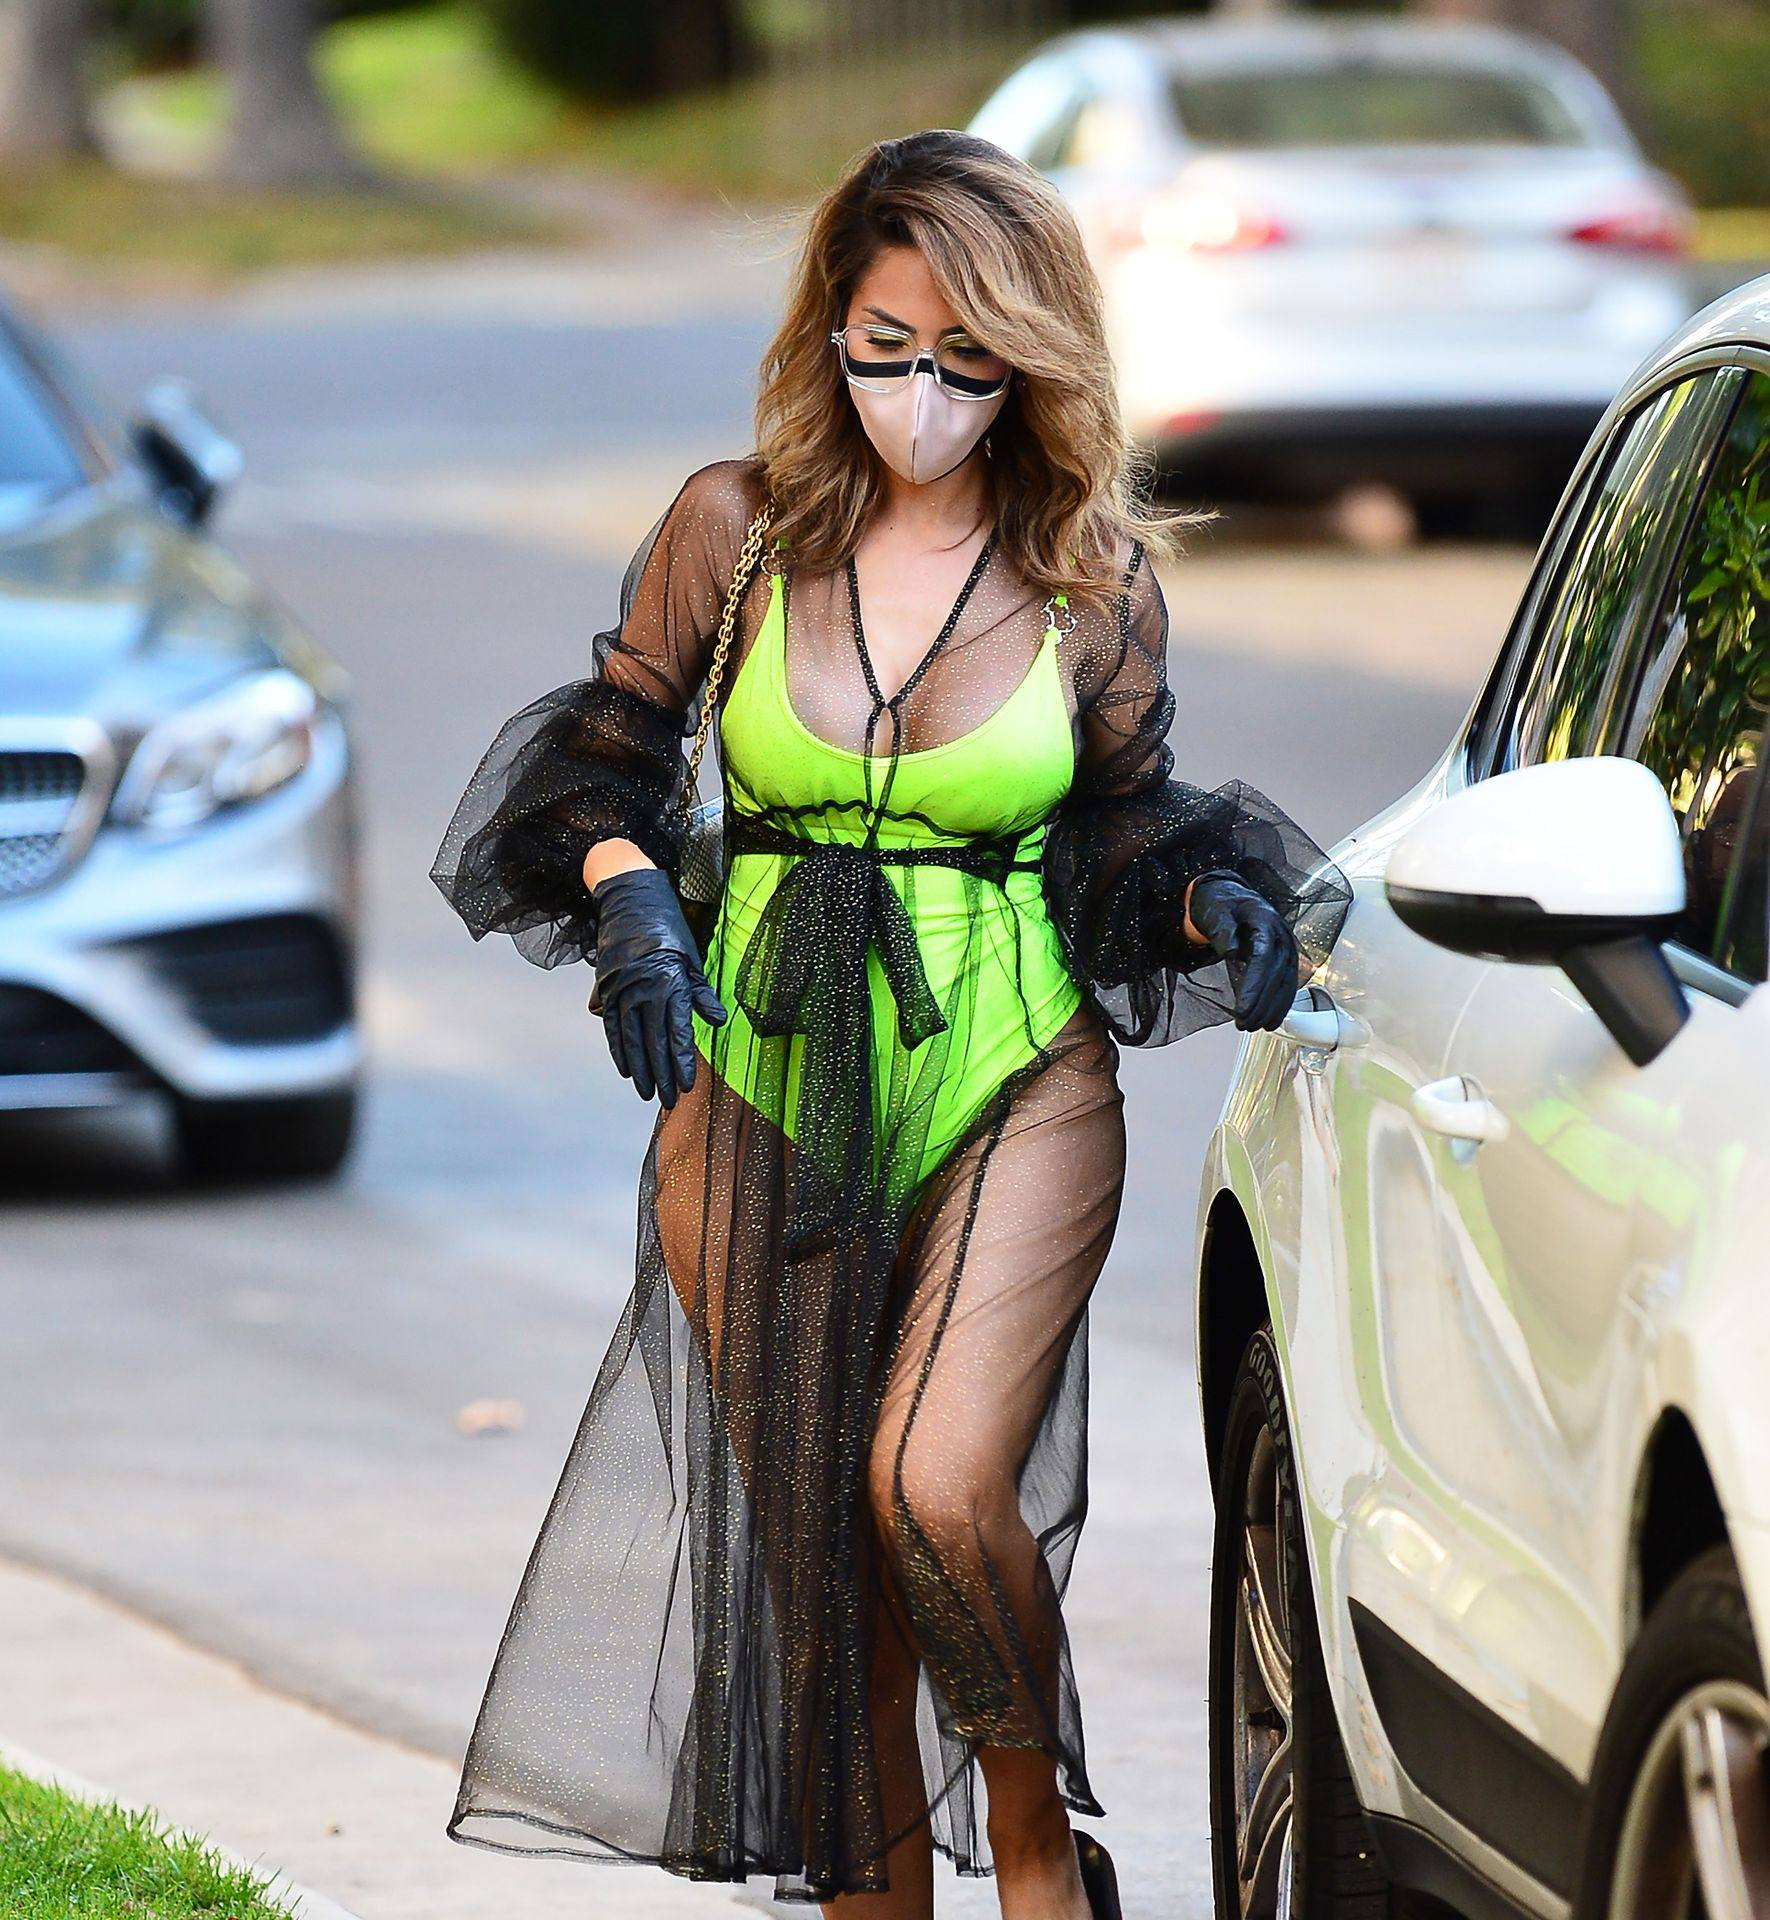 Farrah Abraham – Sexy Big Ass In Neon Green Swimsuit Out In Los Angeles 0010